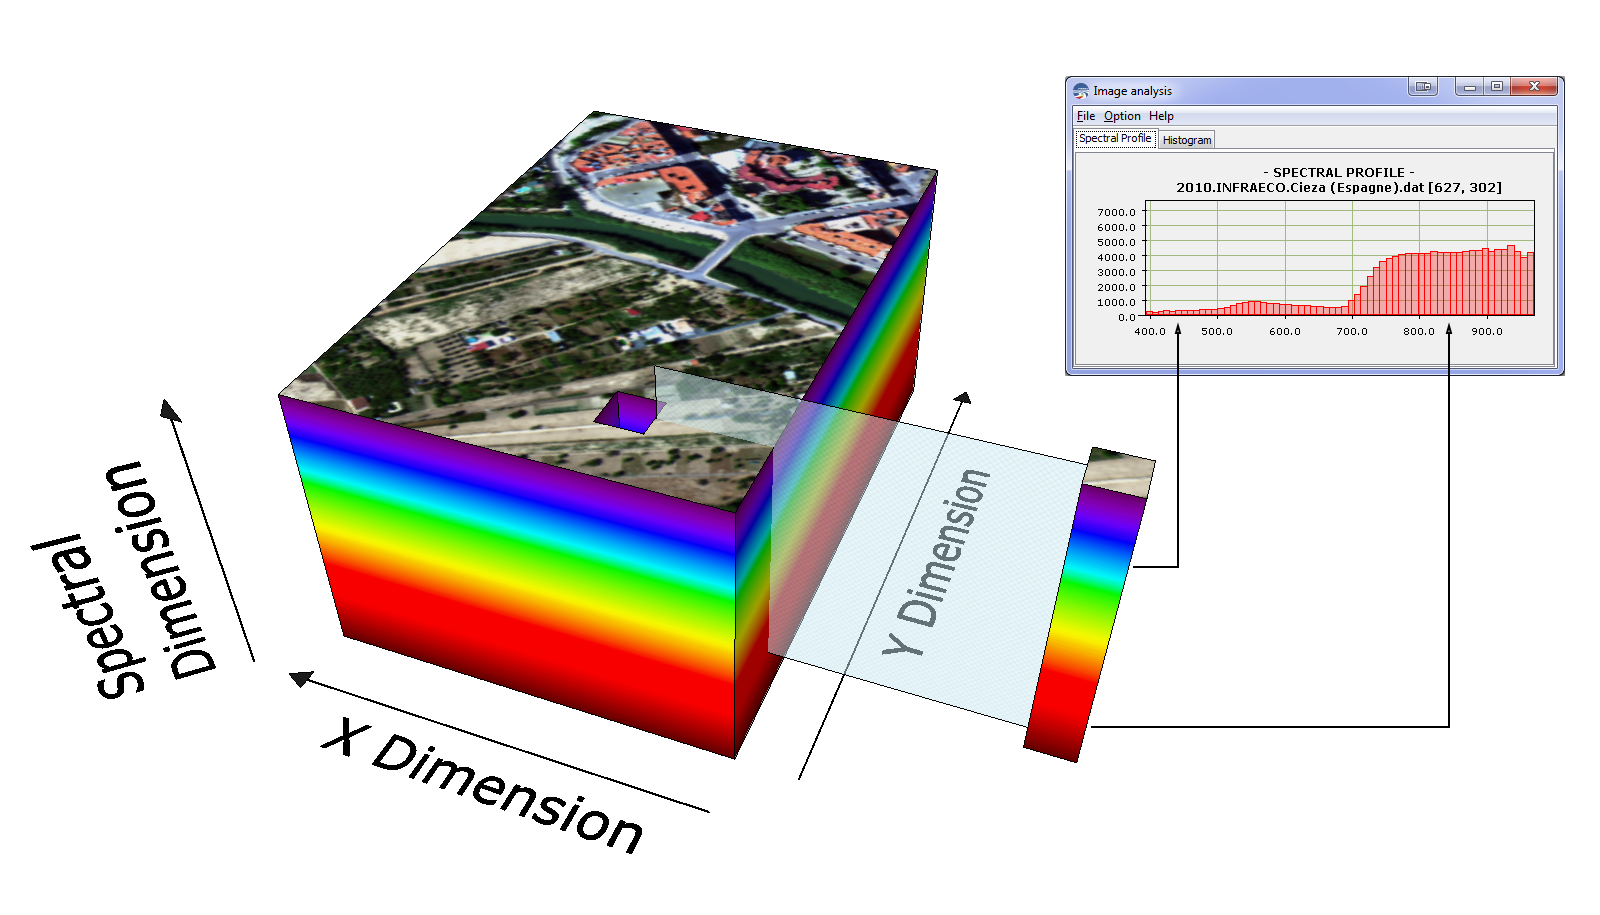 [Graphic representation of a hyperspectral datacube]